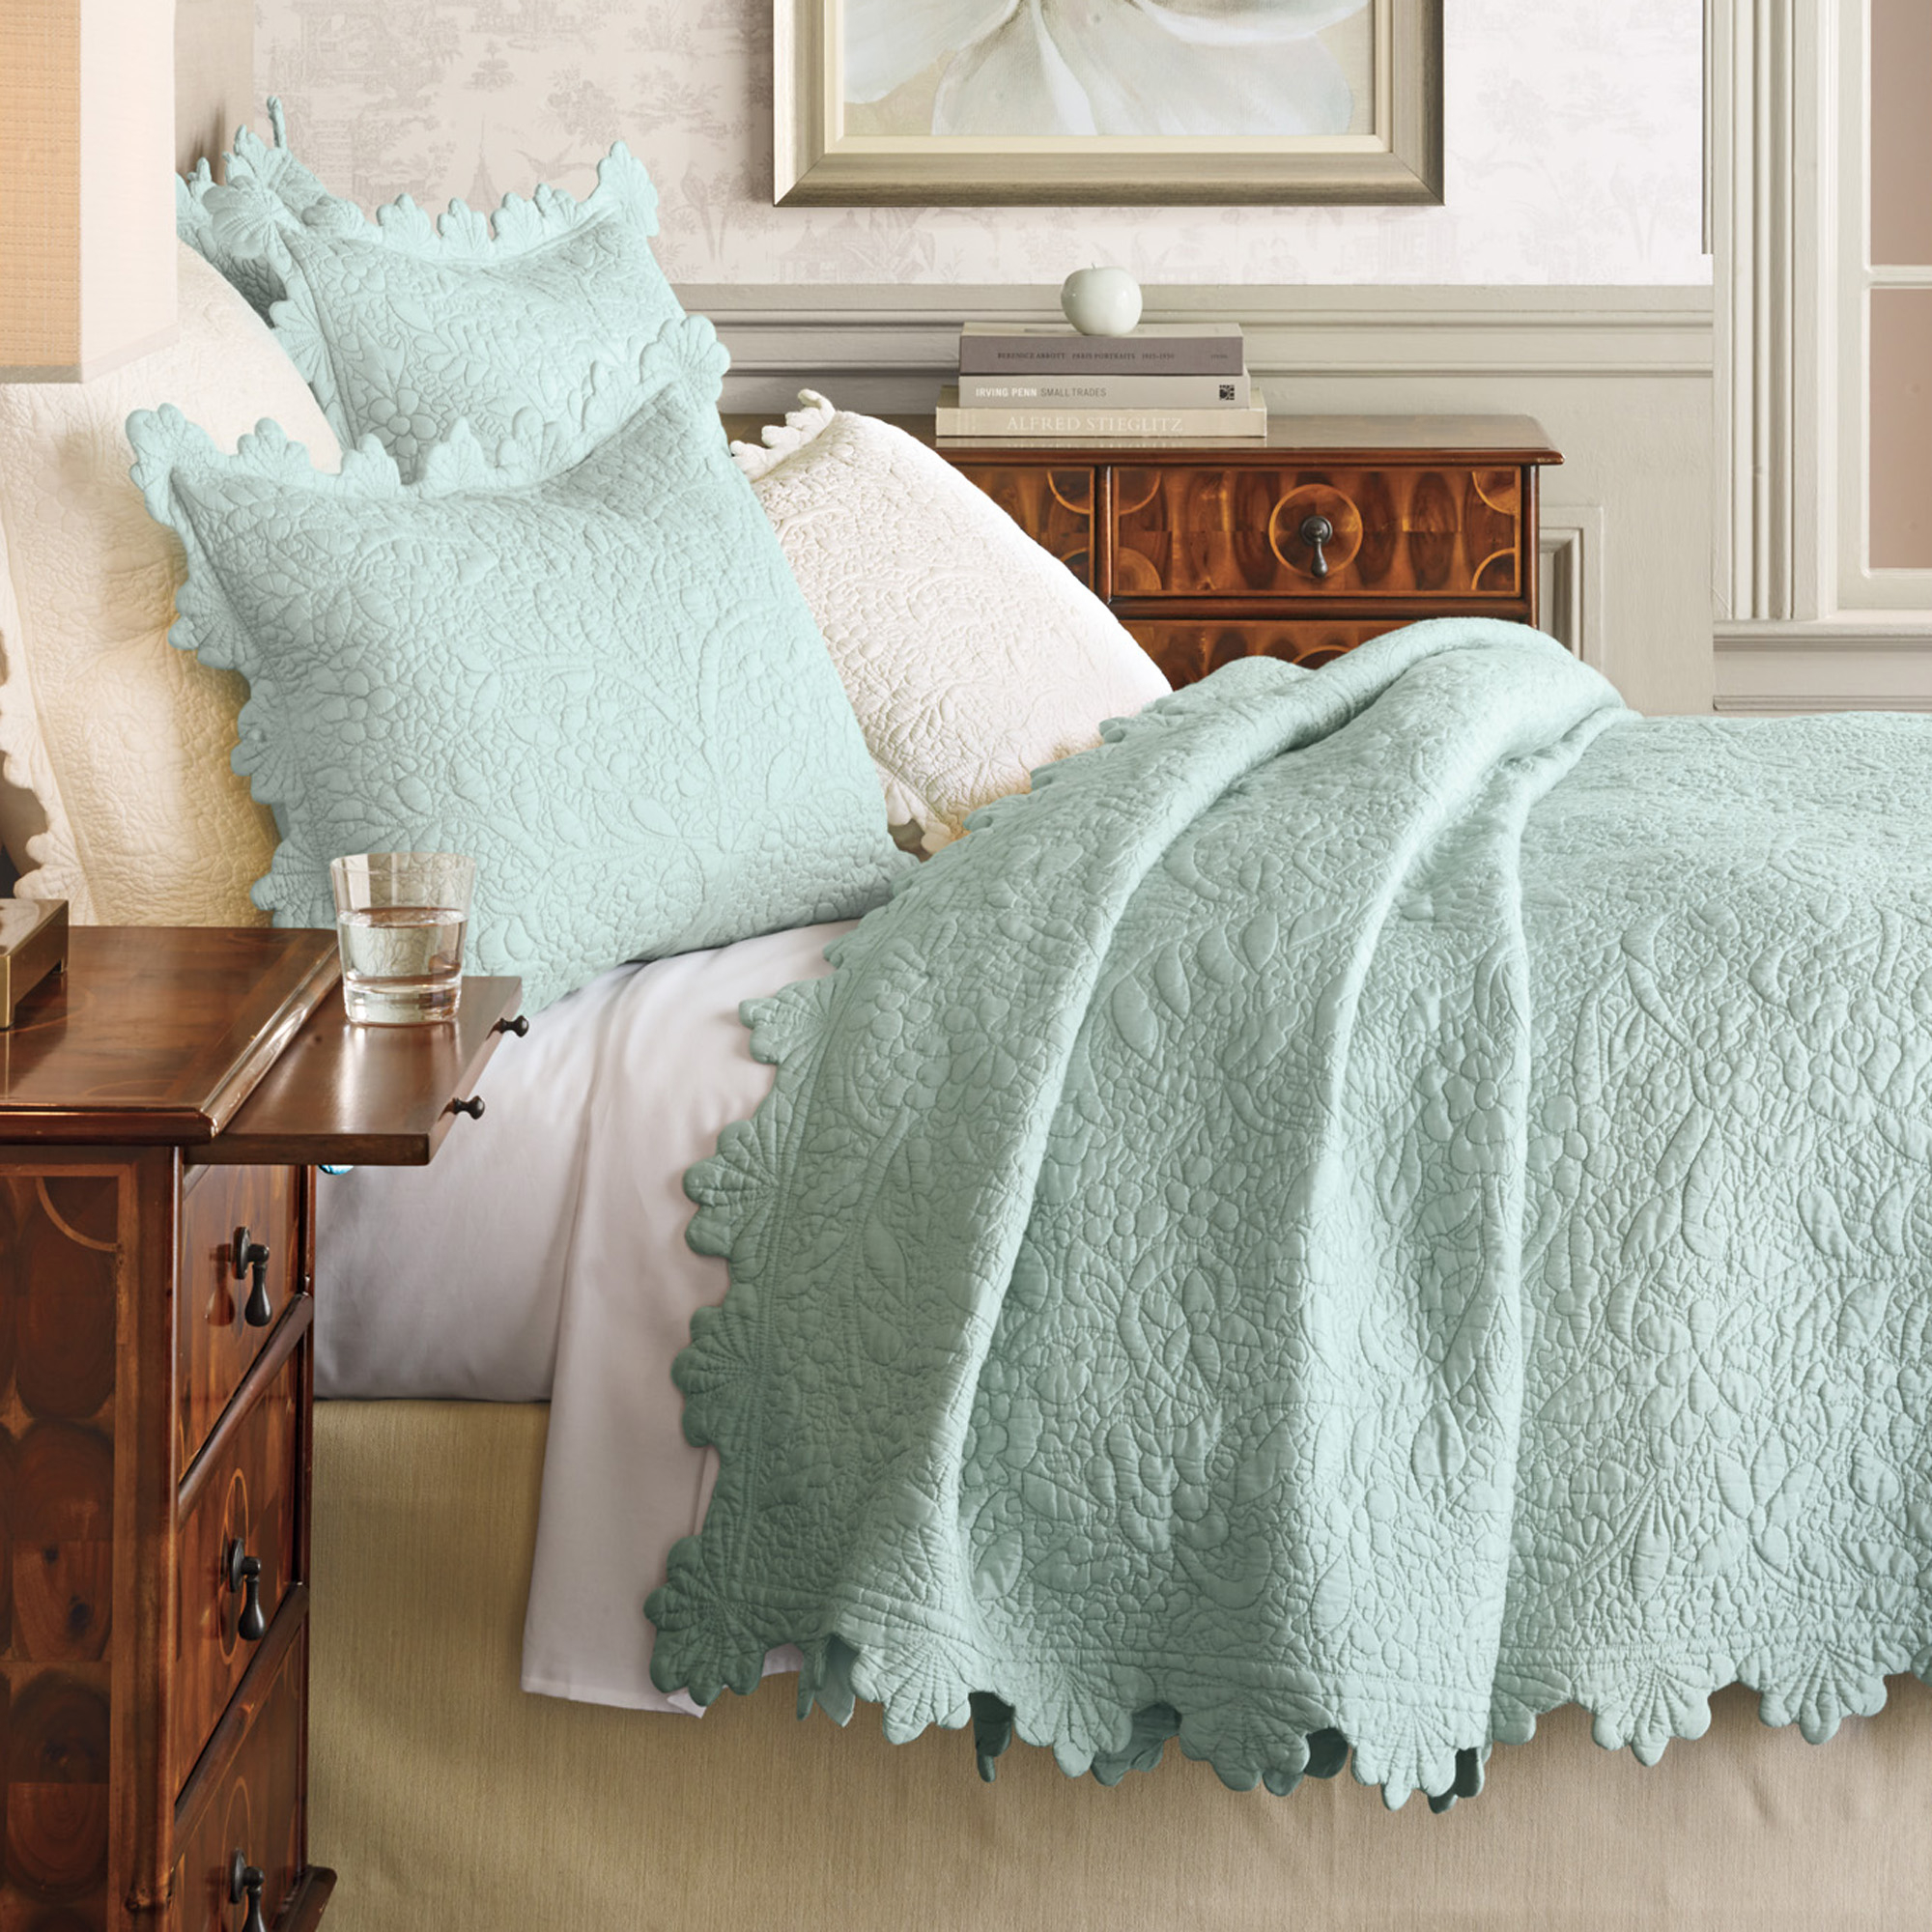 cover scallop duvet stage center edge scalloped embroidered pin and